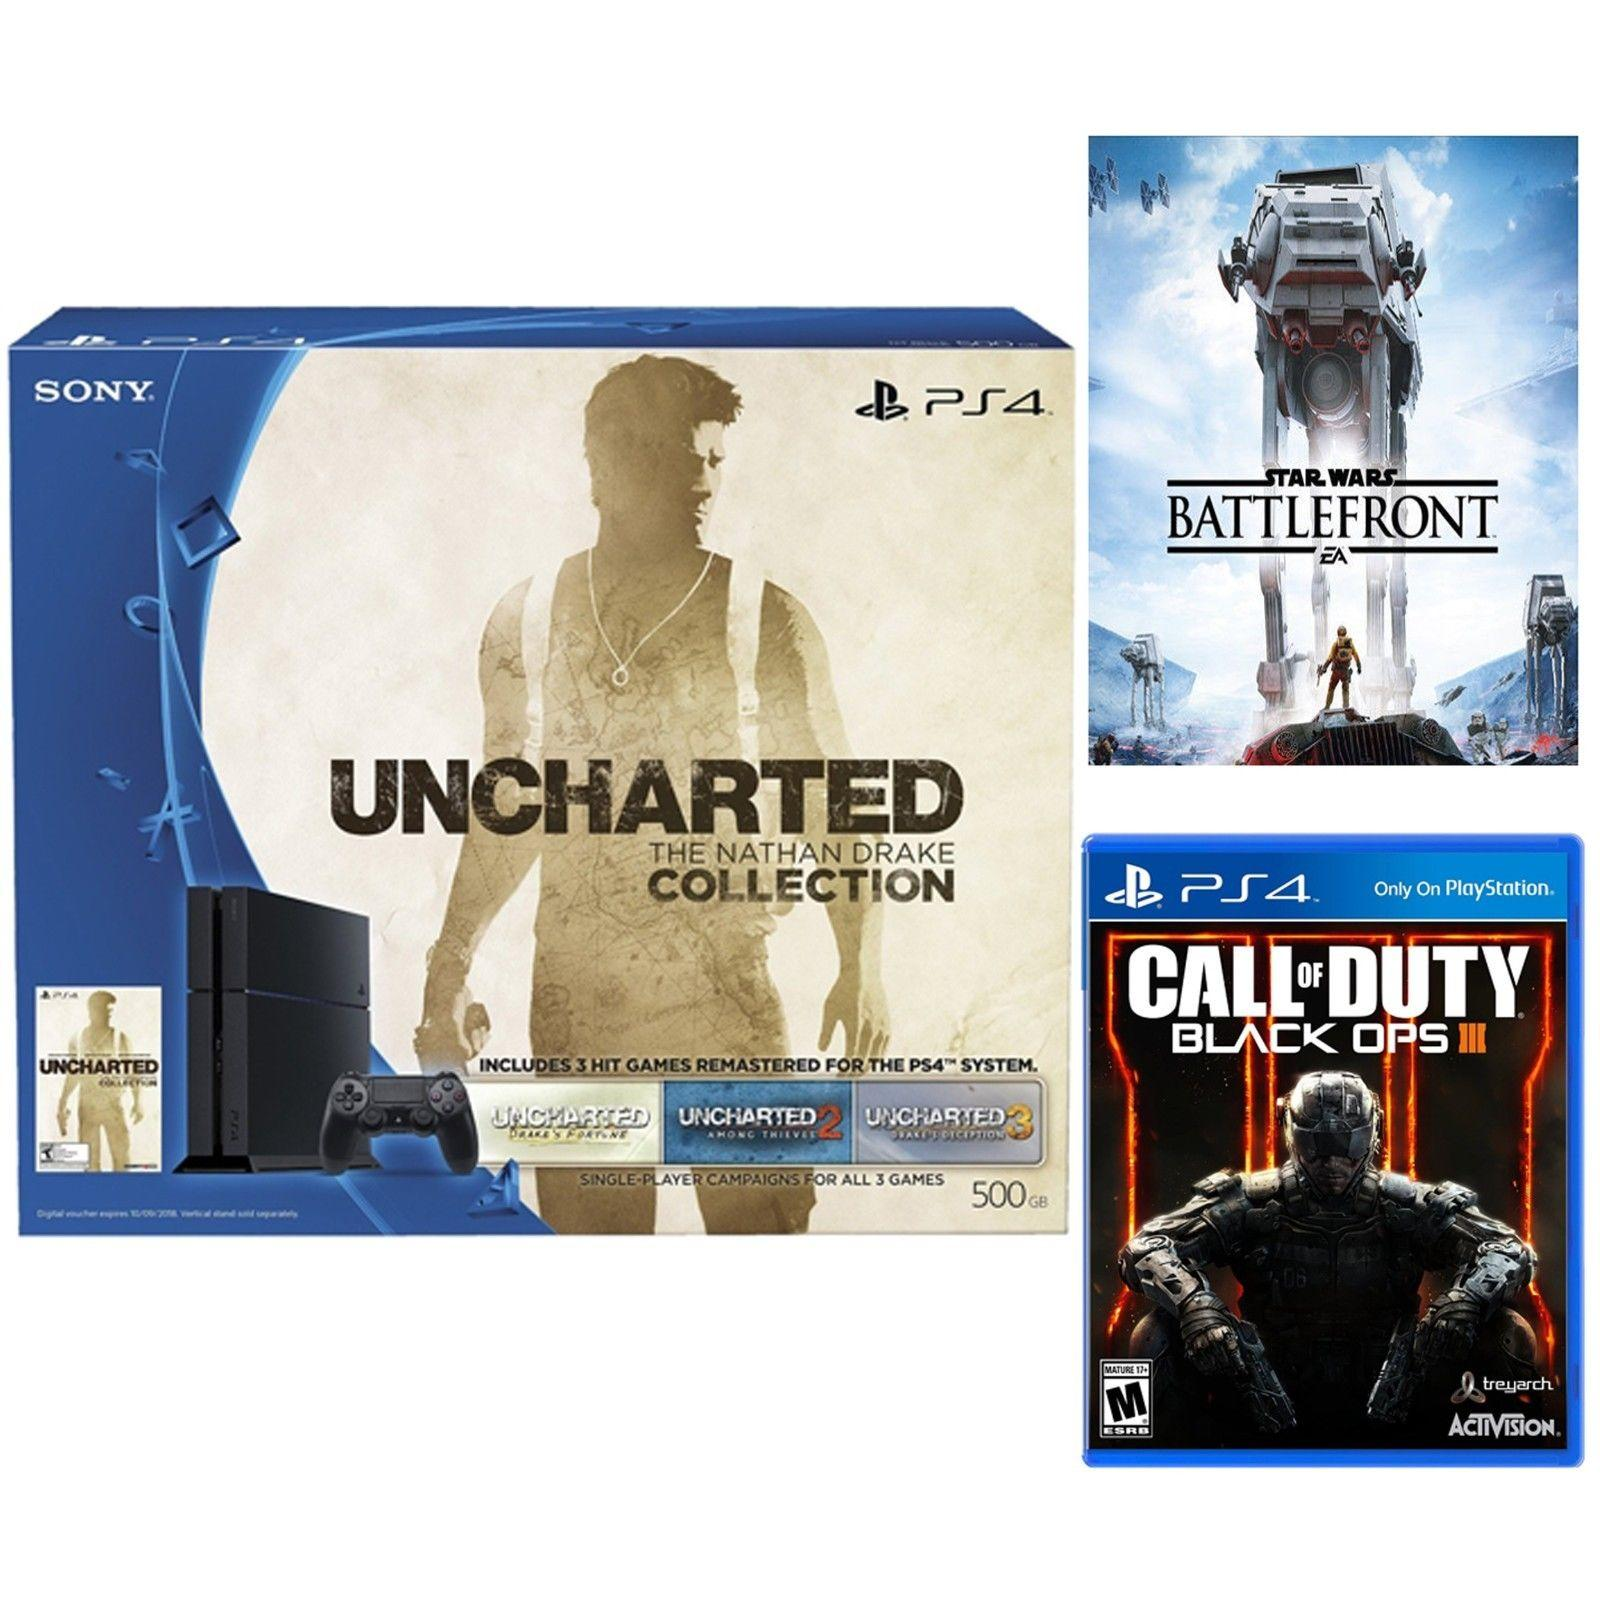 Sony PS4 500GB Star Wars Console + Uncharted + Call of Duty Black Ops III